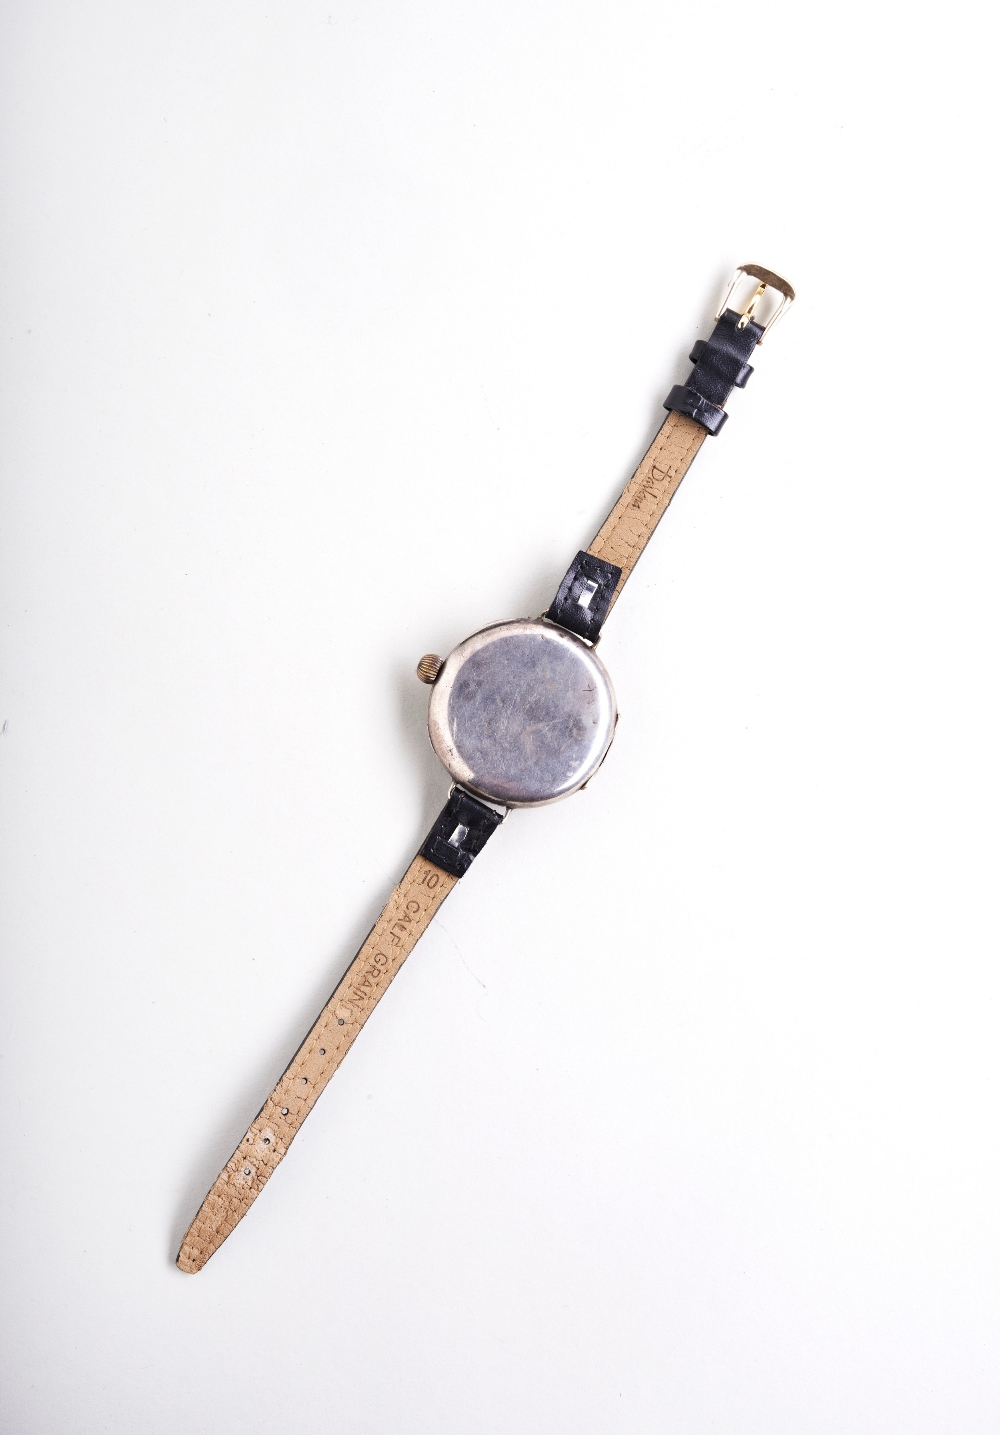 SWISS 'DOCTORS' SILVER MANUAL WRISTWATCH, early 20th century, the white enamel dial with - Image 3 of 3